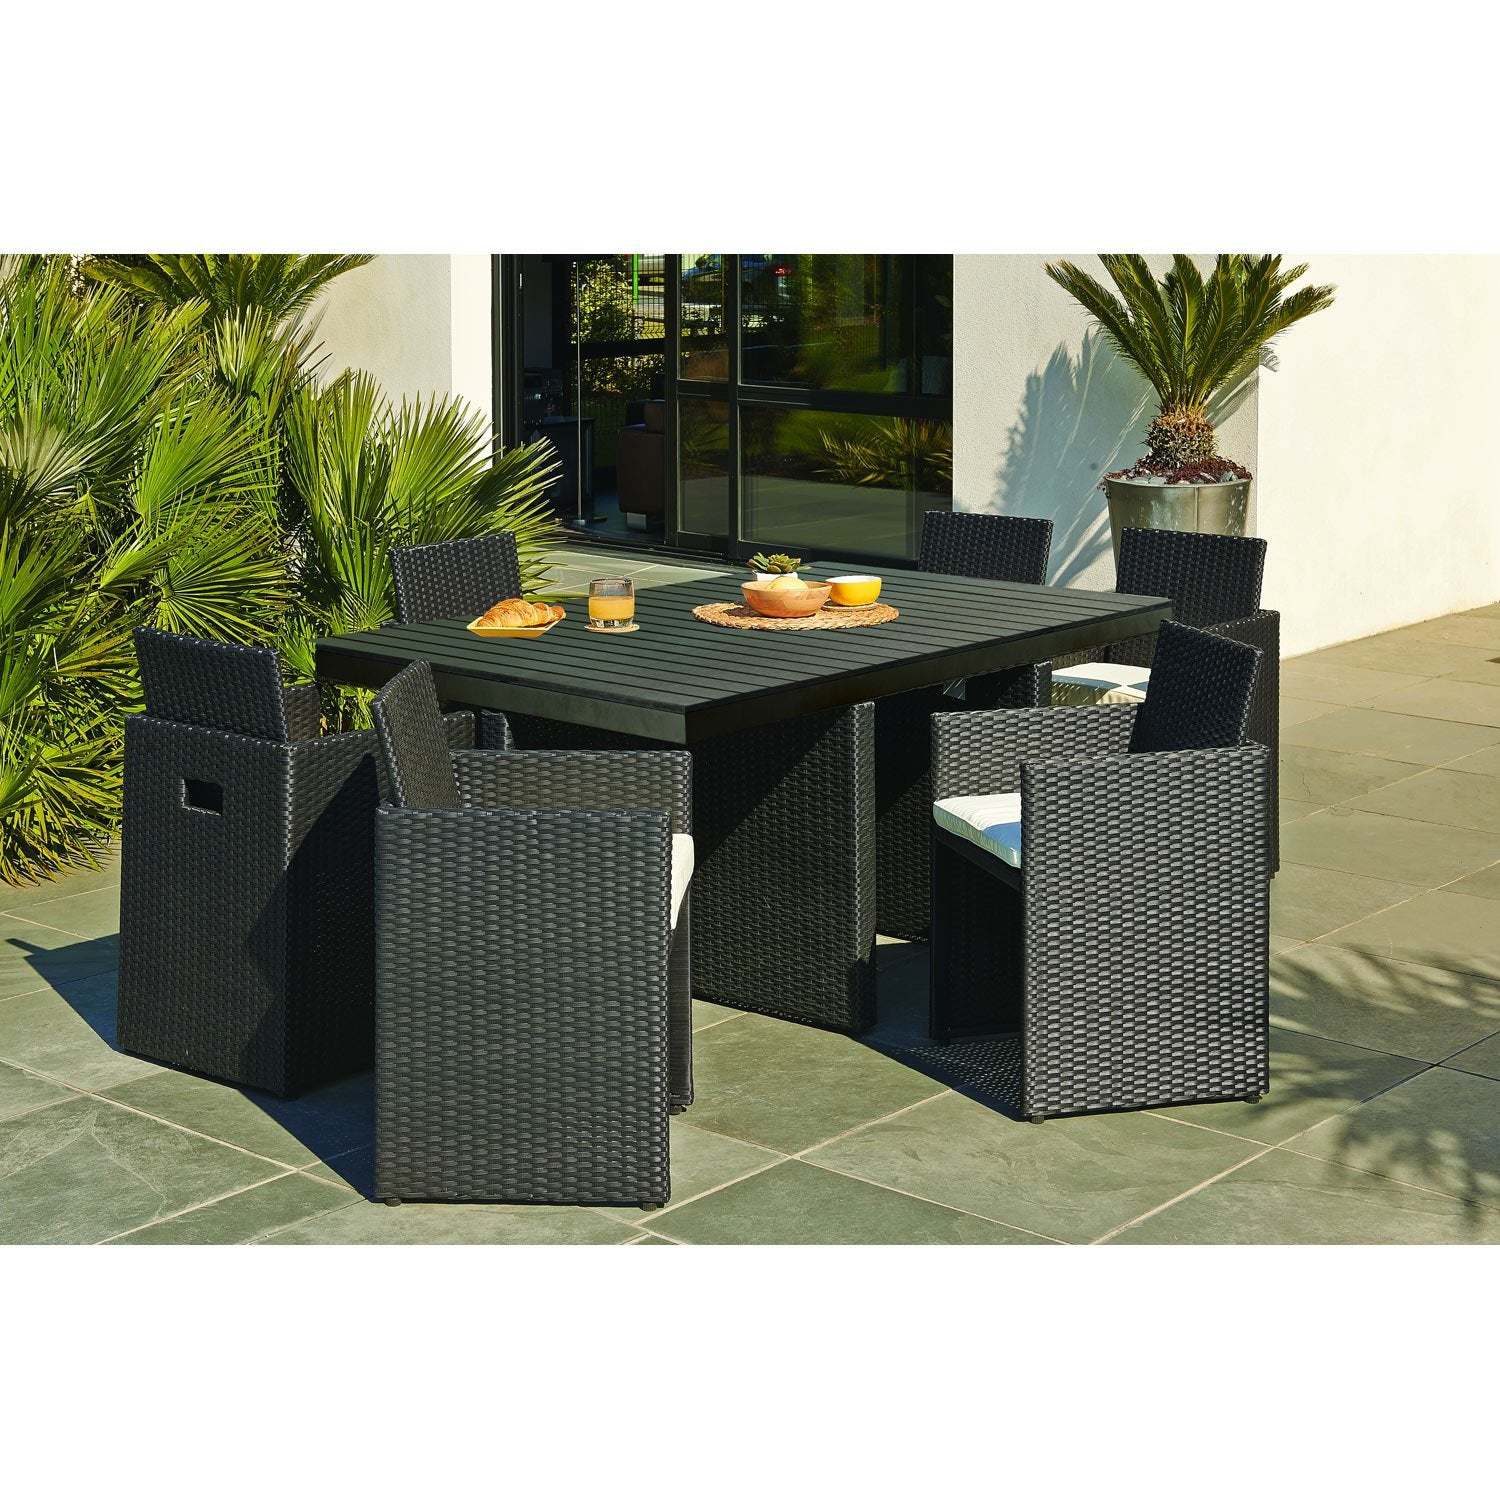 Salon de jardin encastrable r sine tress e noir 1 table 6 fauteuils leroy - Leroy merlin salon jardin ...